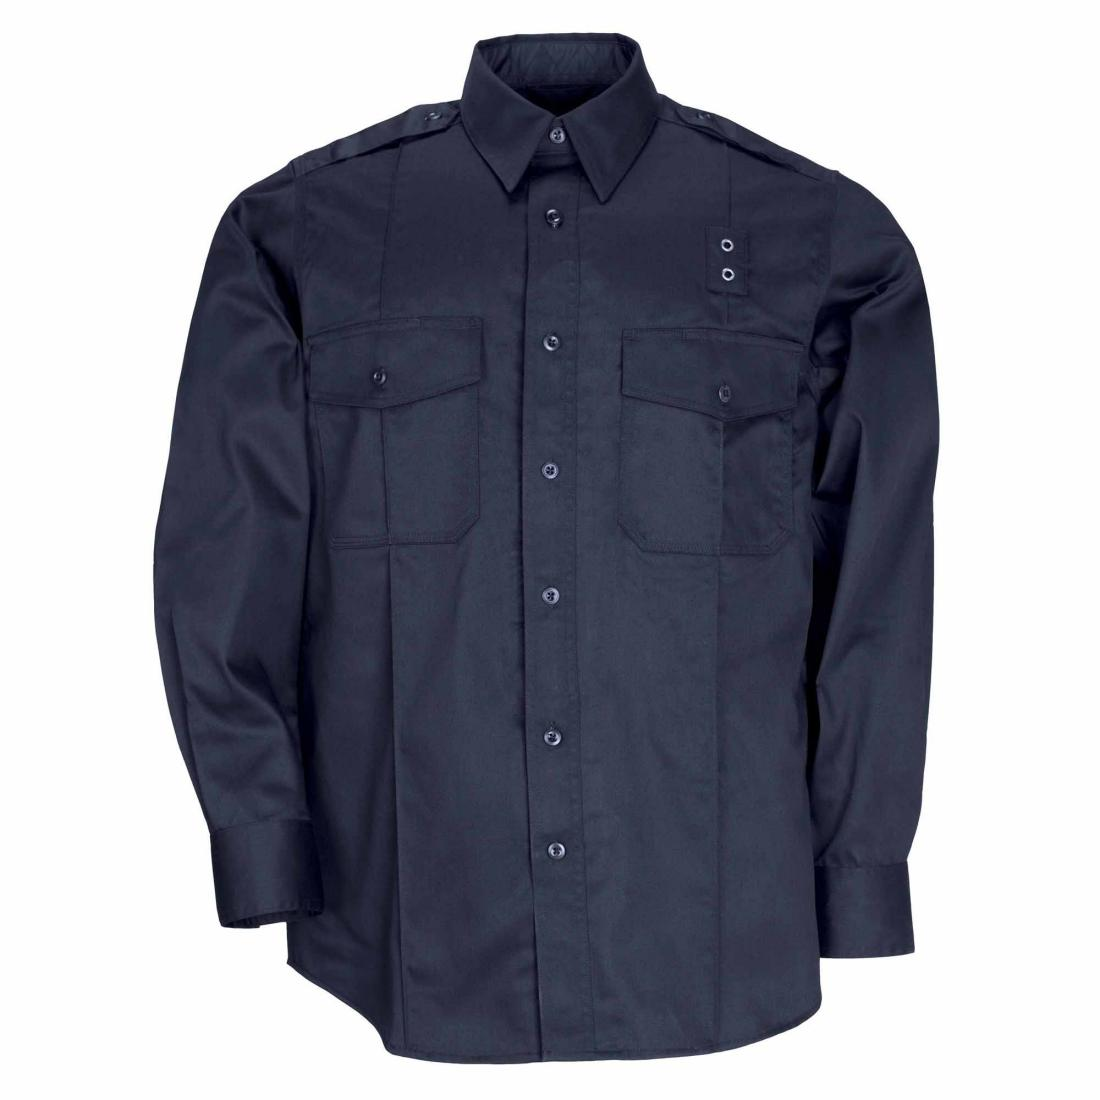 5.11 Tactical 72344 Men Twill PDU Class-A Long Sleeve Shirt Midnight Navy